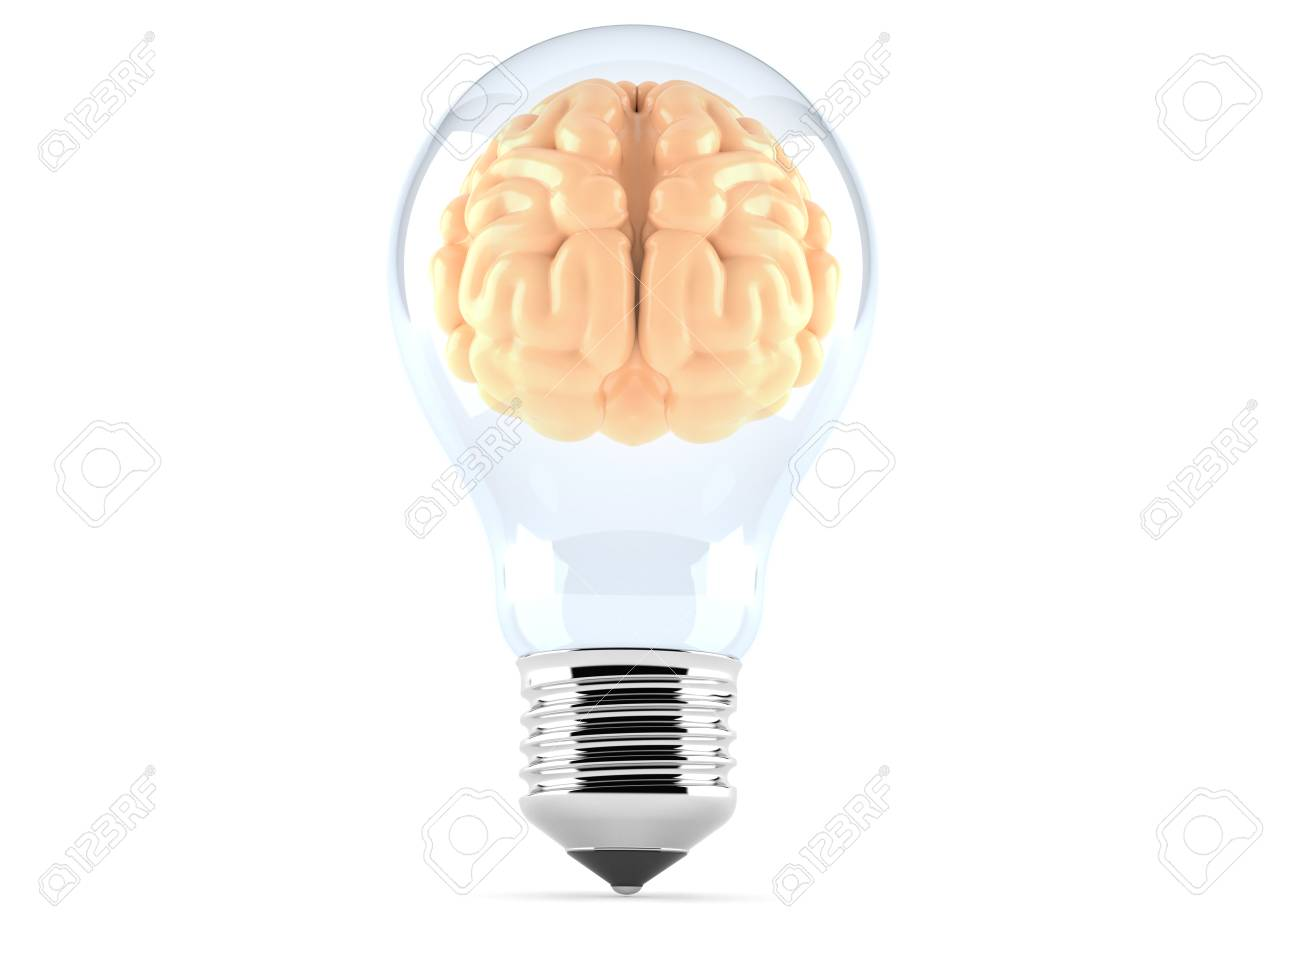 Light Bulb With Brain Isolated On White Background Stock Photo ...